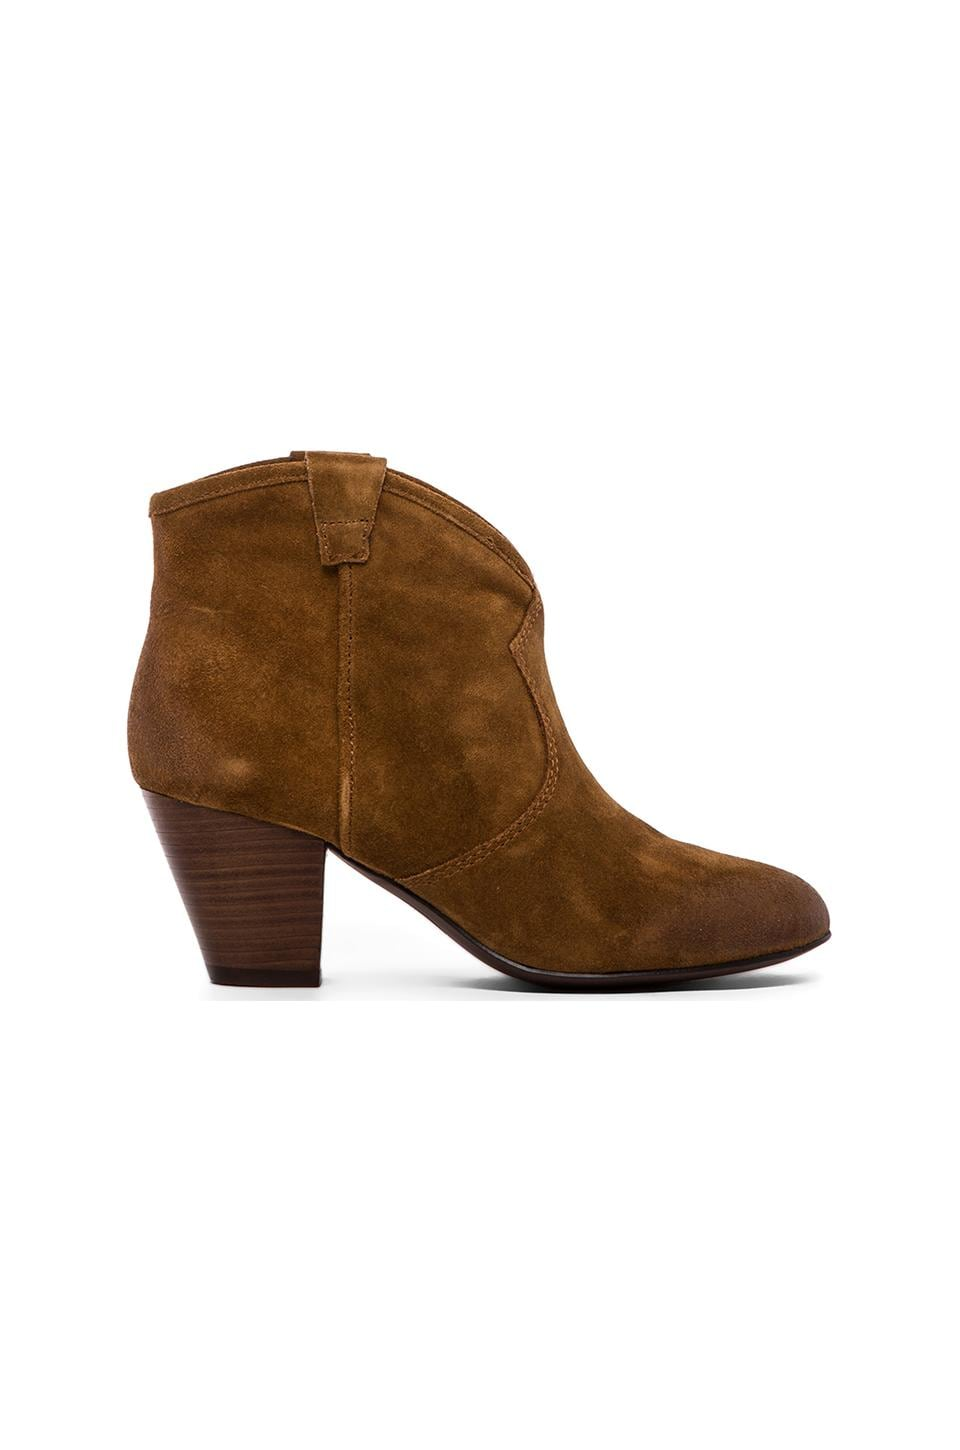 Ash Jalouse Bootie in Cookie